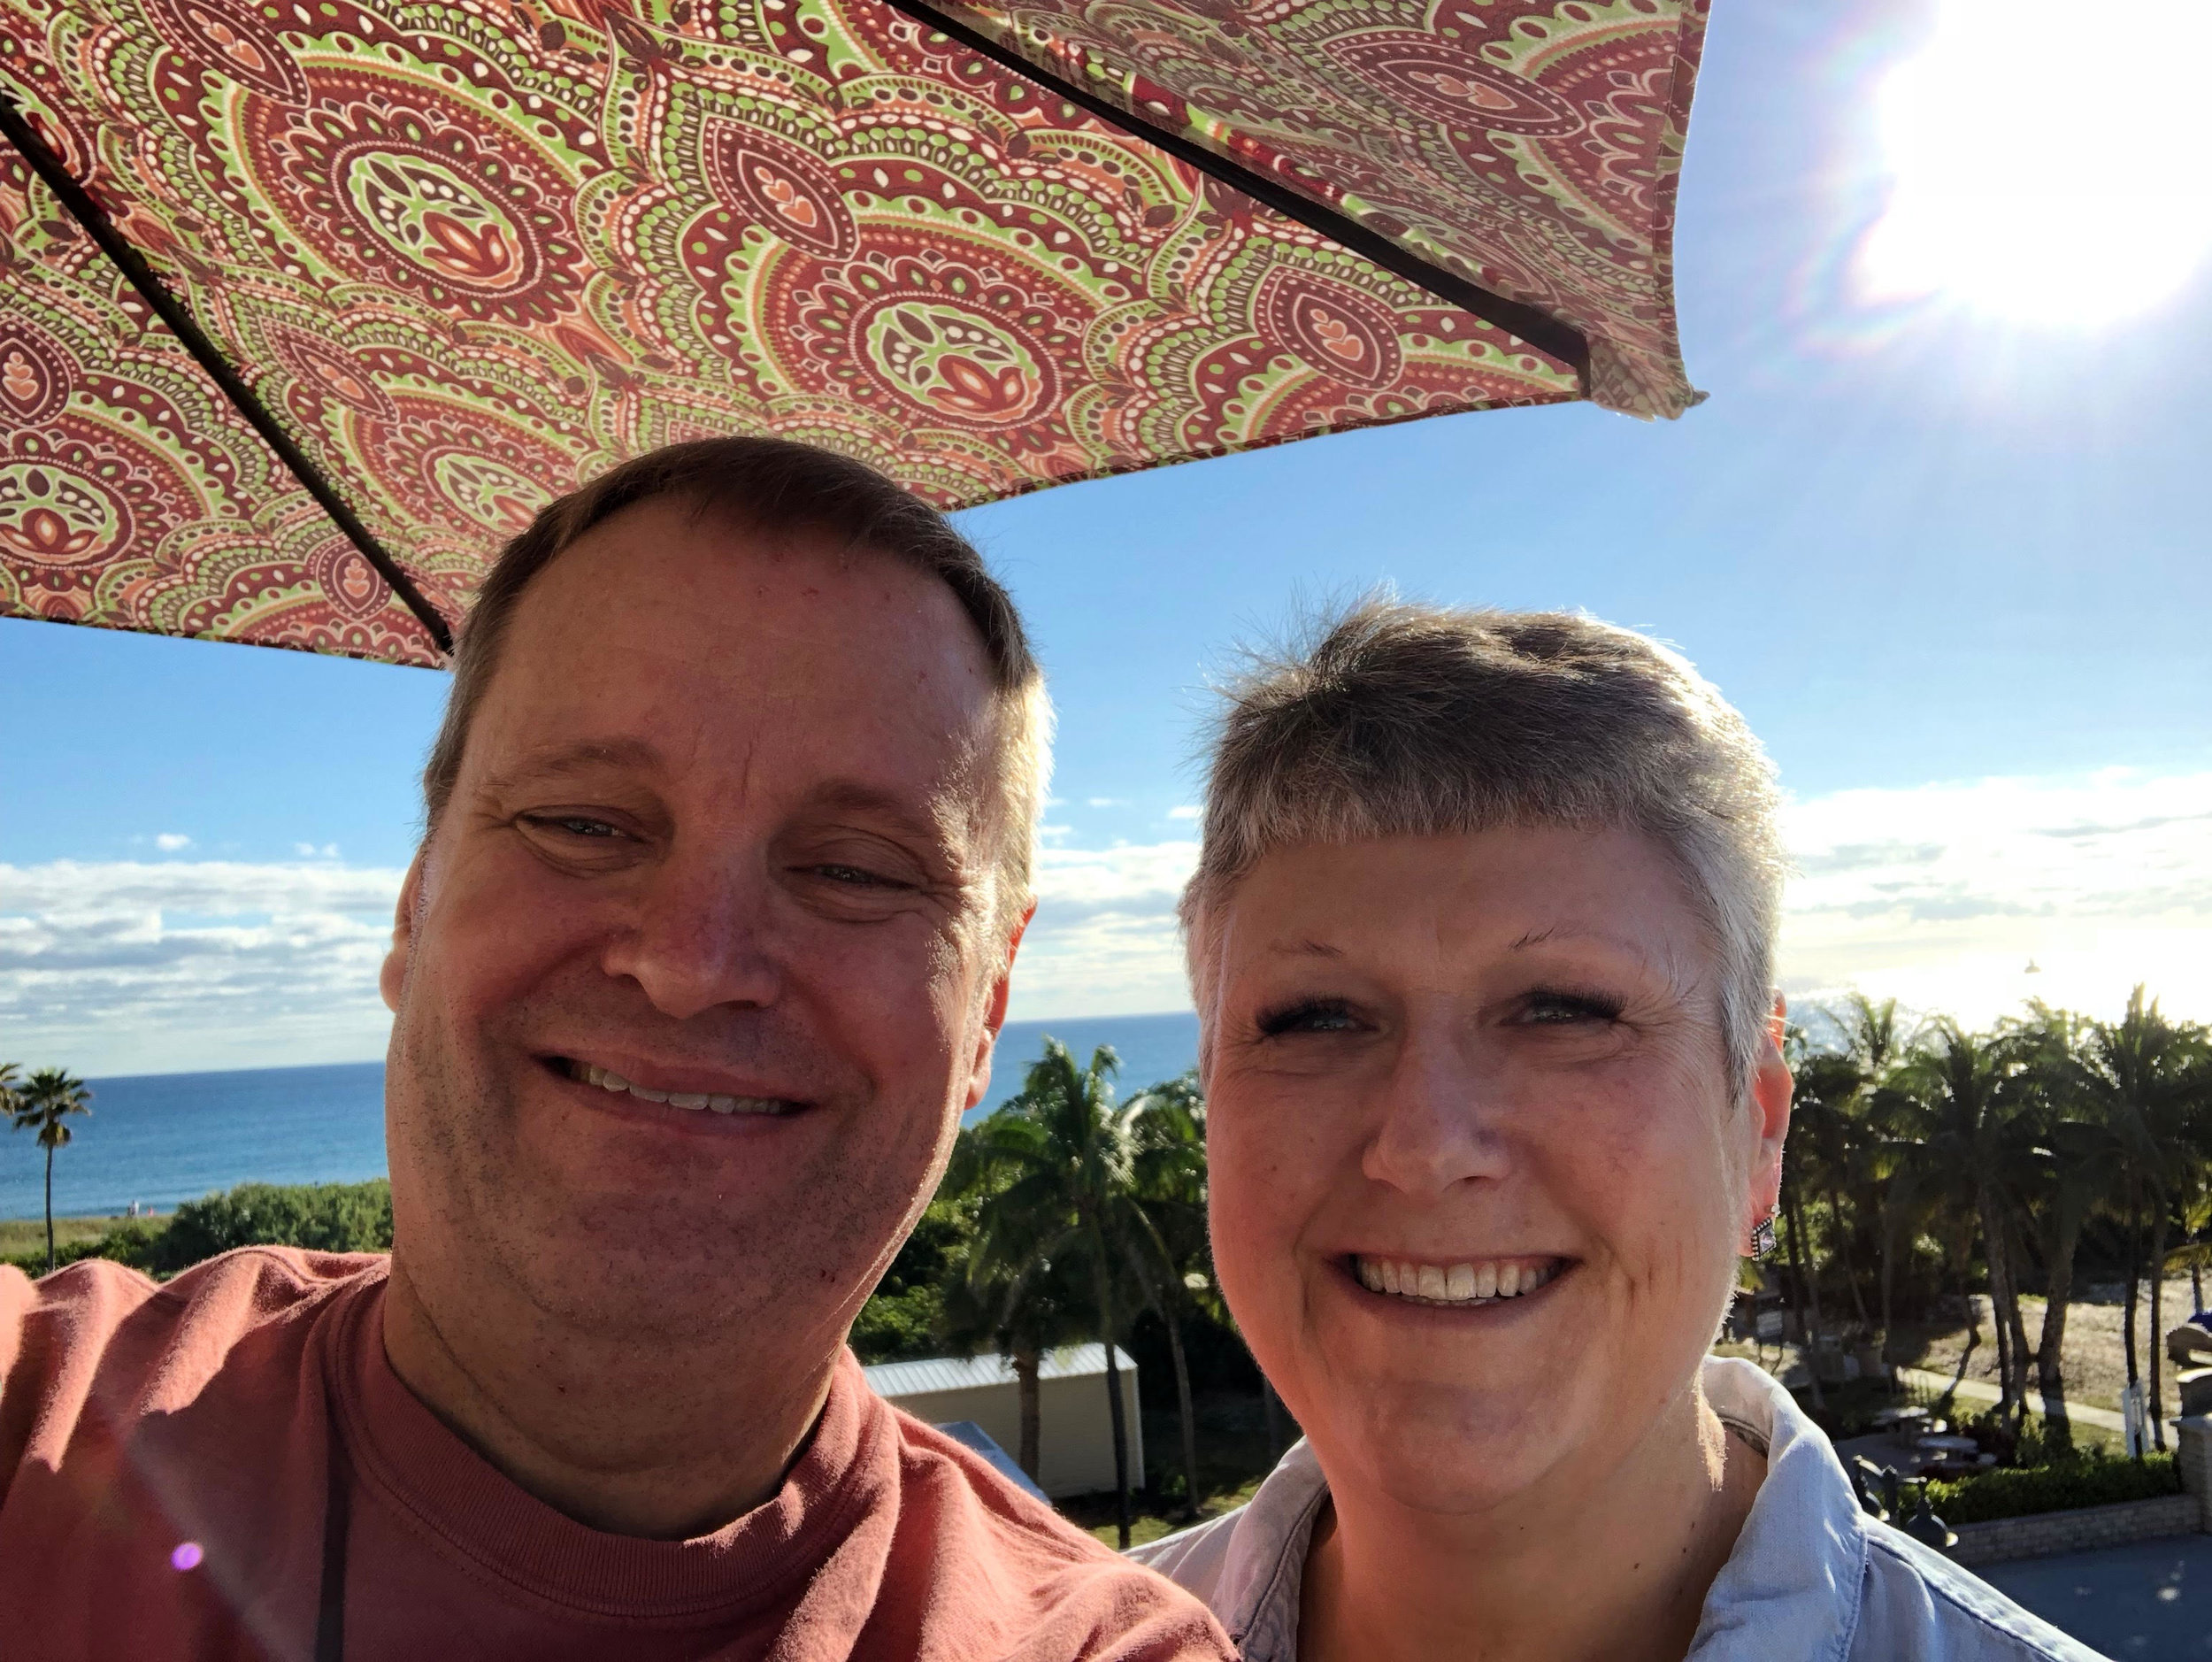 My wife April and I having a blast in Florida during the 2018 holidays.